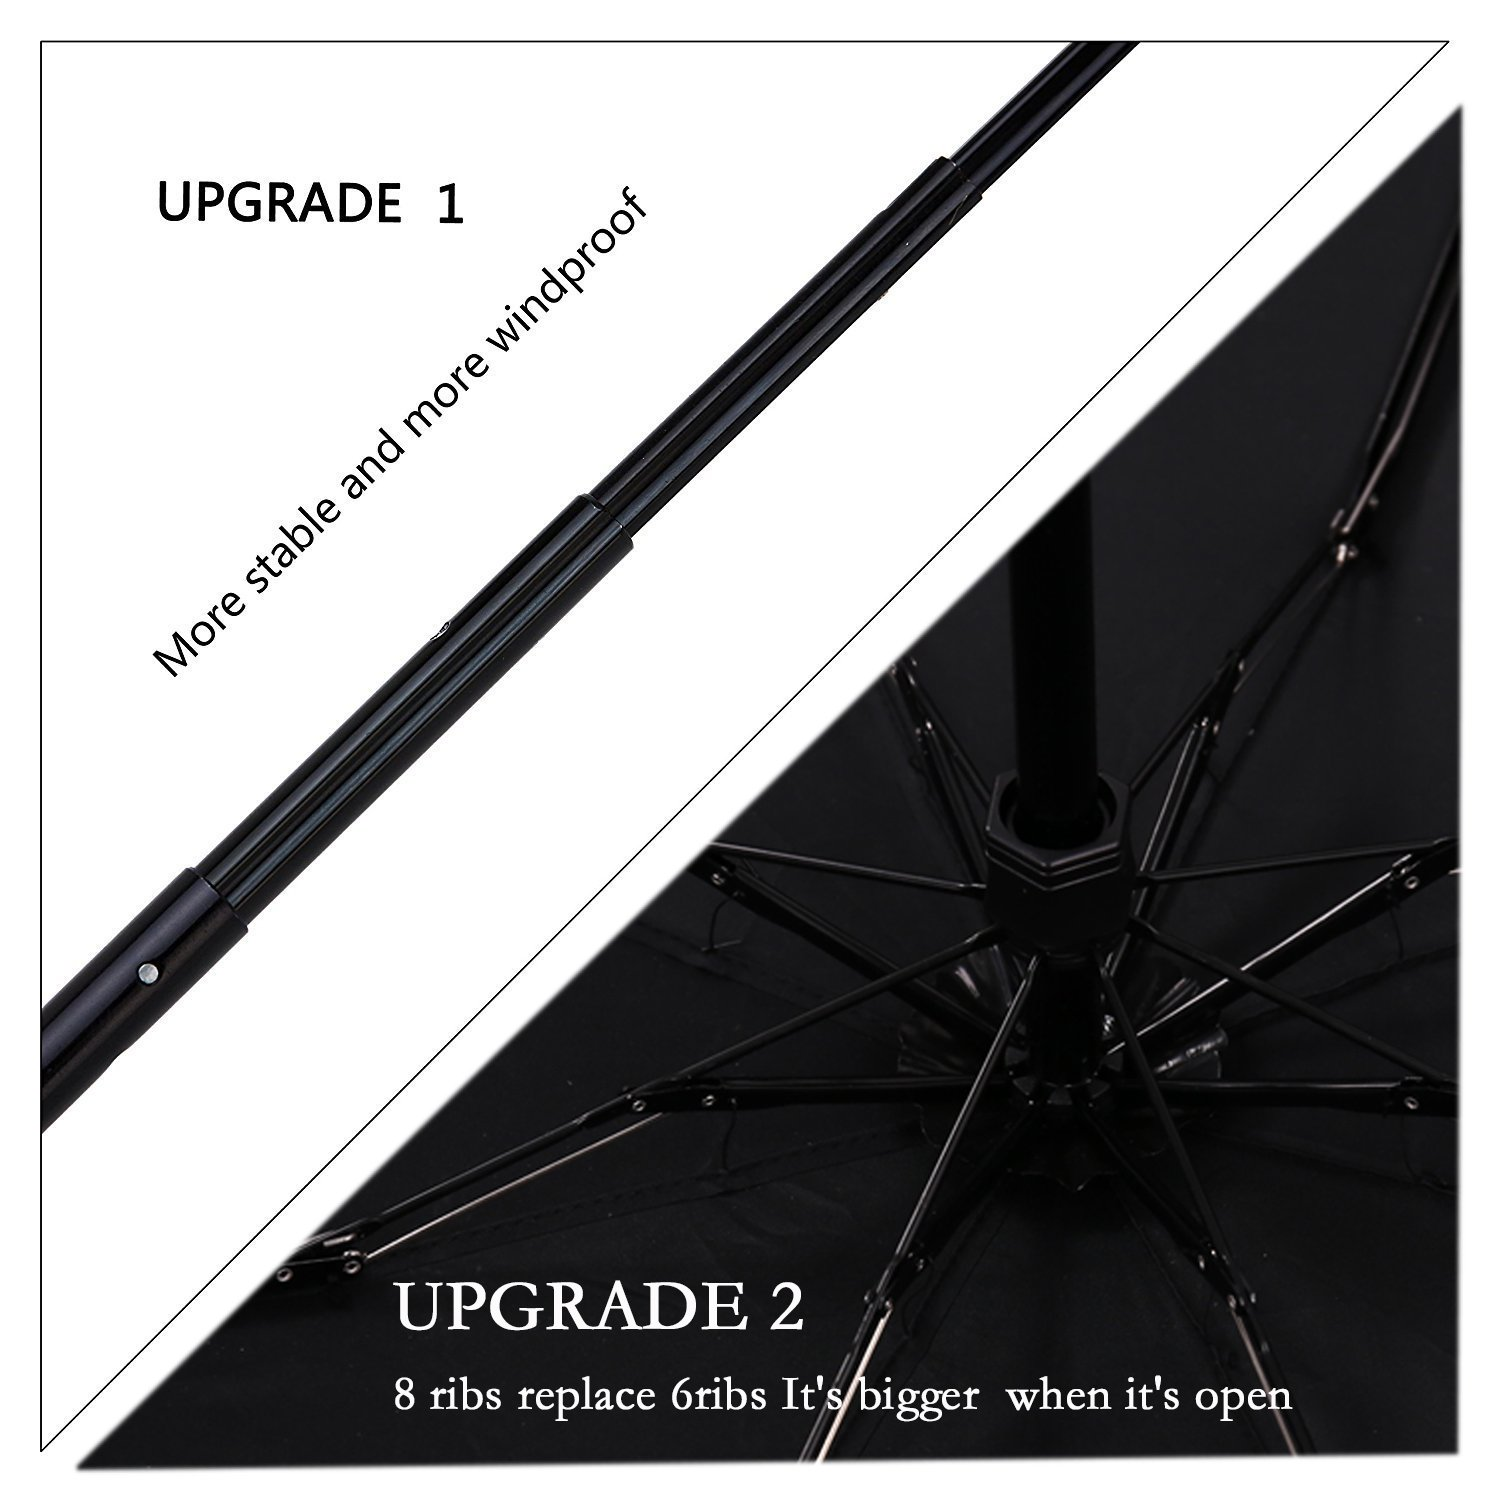 SY COMPACT Travel Umbrella - Lightweight Portable Mini Compact Umbrellas-Factory Outlet Shop (Black) by SY COMPACT (Image #5)